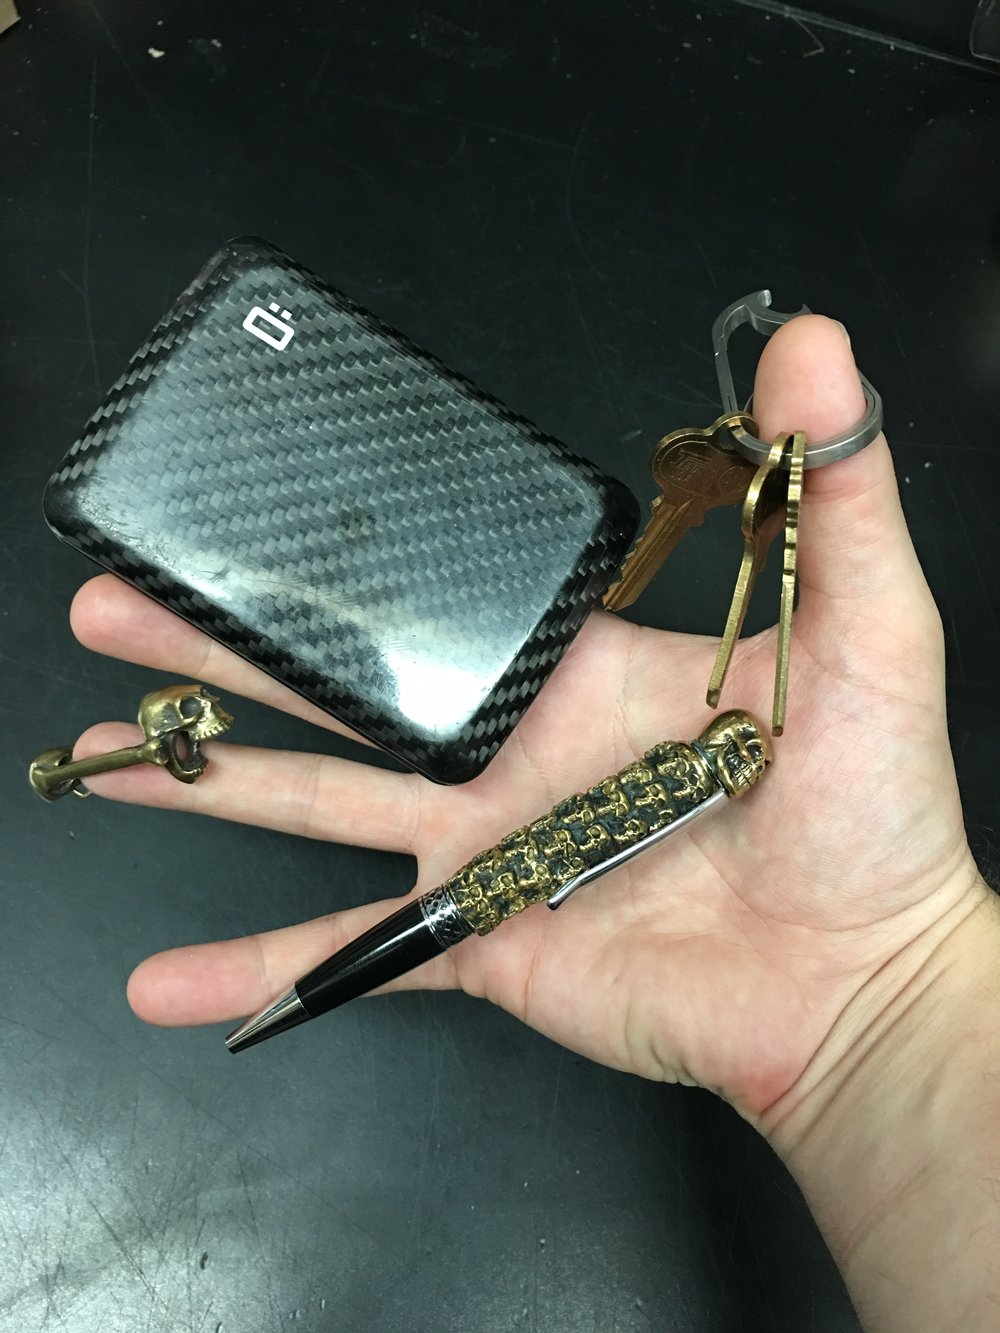 Ogon Wallet with Big Head Pen, Laughing Skull Bottle Opener and KeyKilpZ